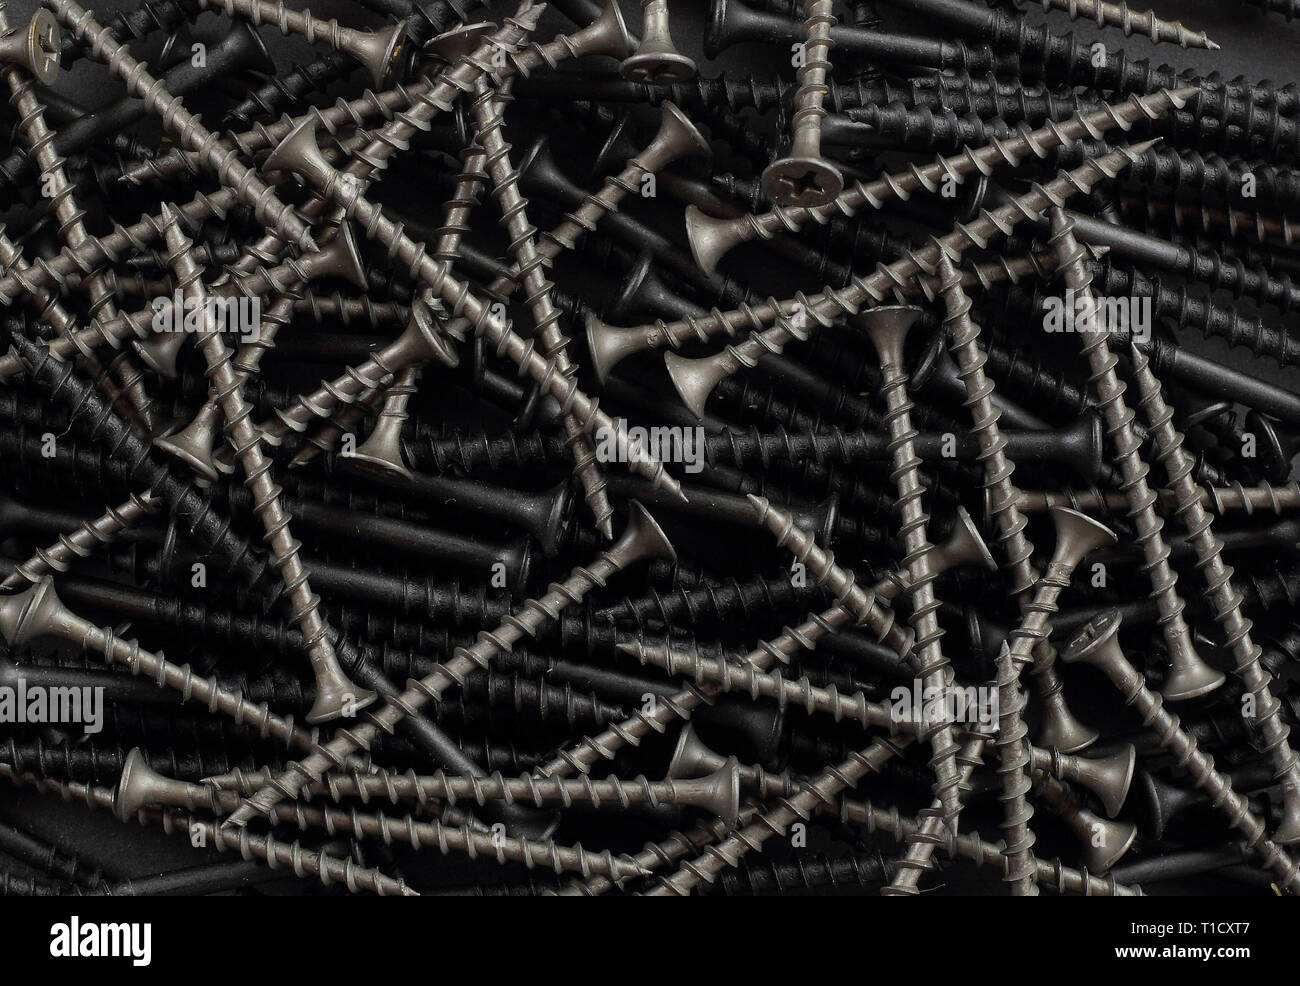 Construction, repair, tools - Abstract Self-tapping screw background Stock Photo